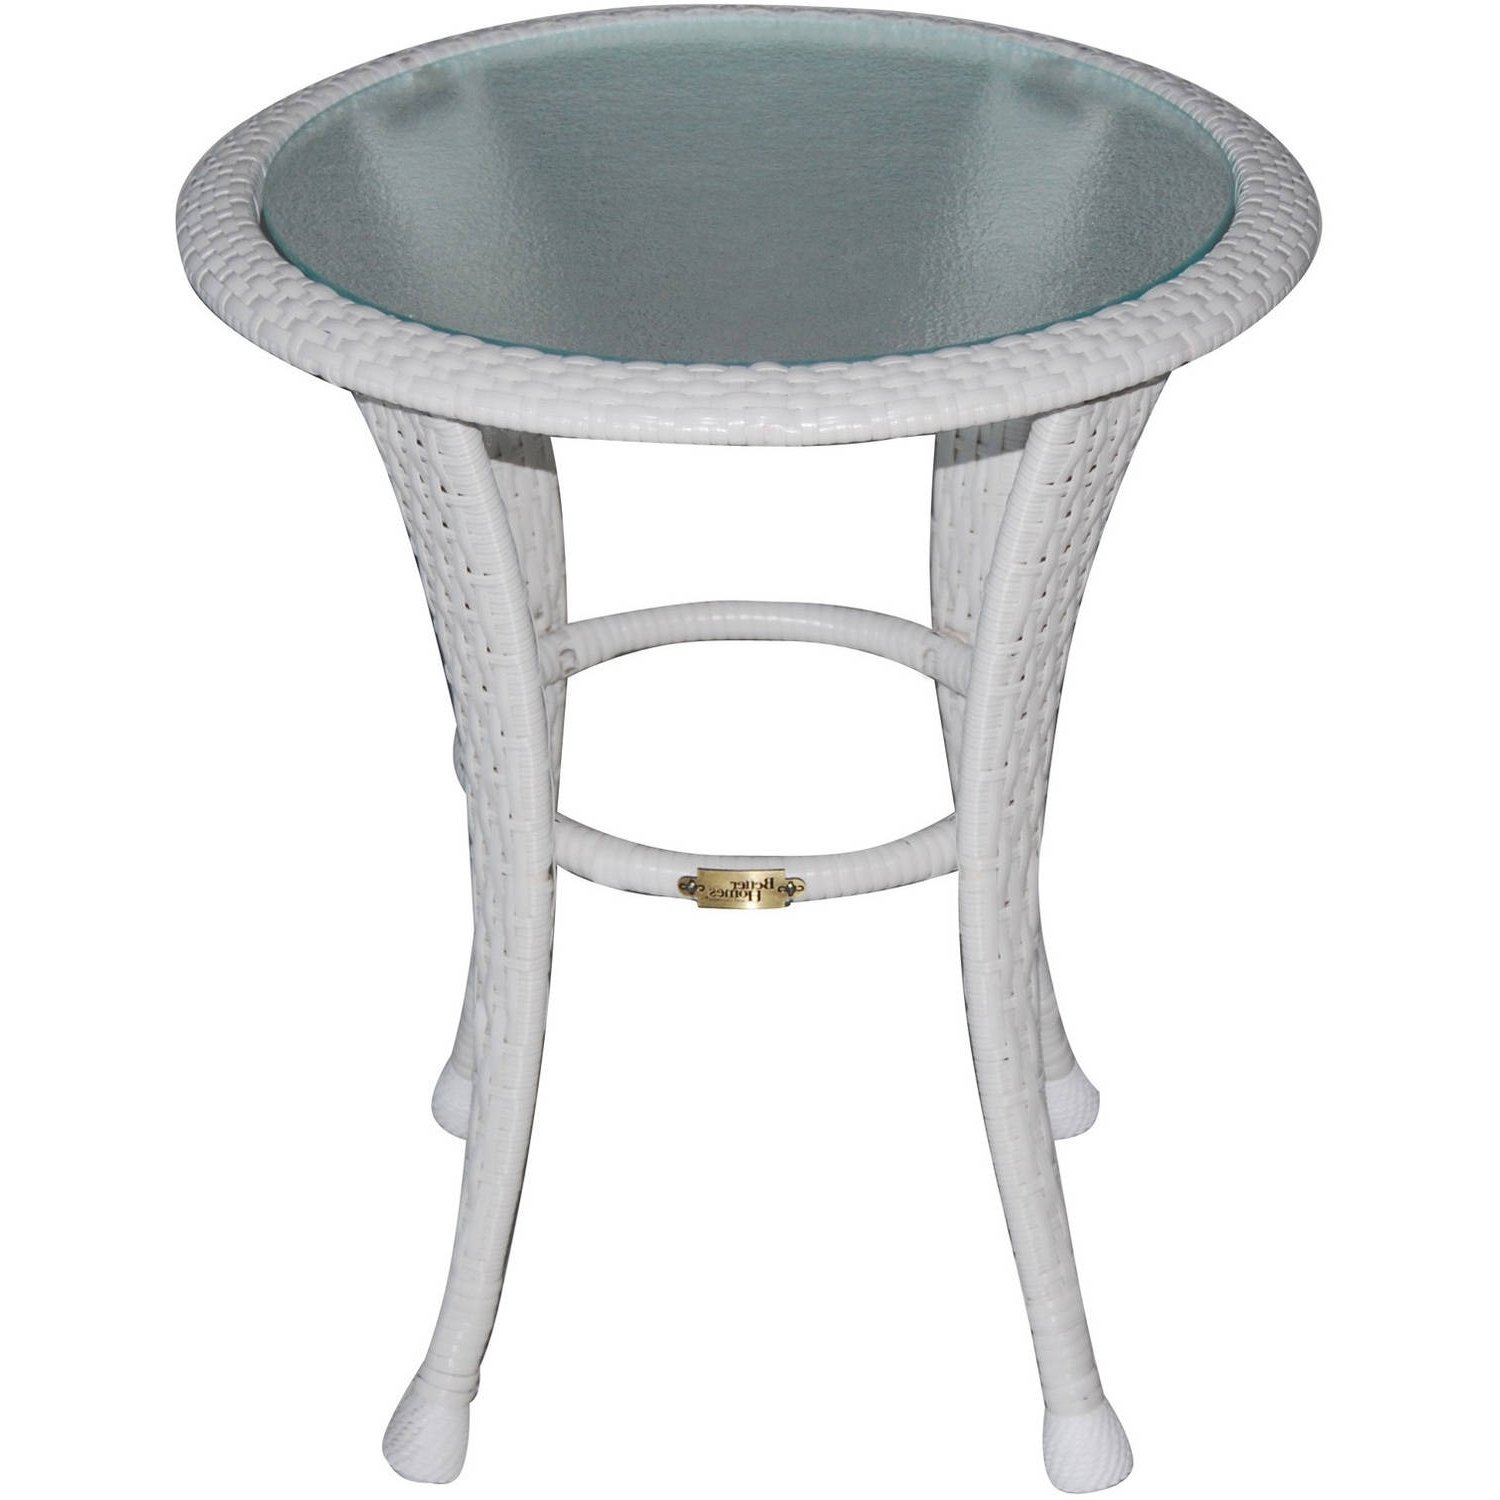 popular patio umbrellas with accent table regard widely used better homes and gardens azalea ridge round outdoor side umbrella furnishings espresso end metal drum cabinet wedding